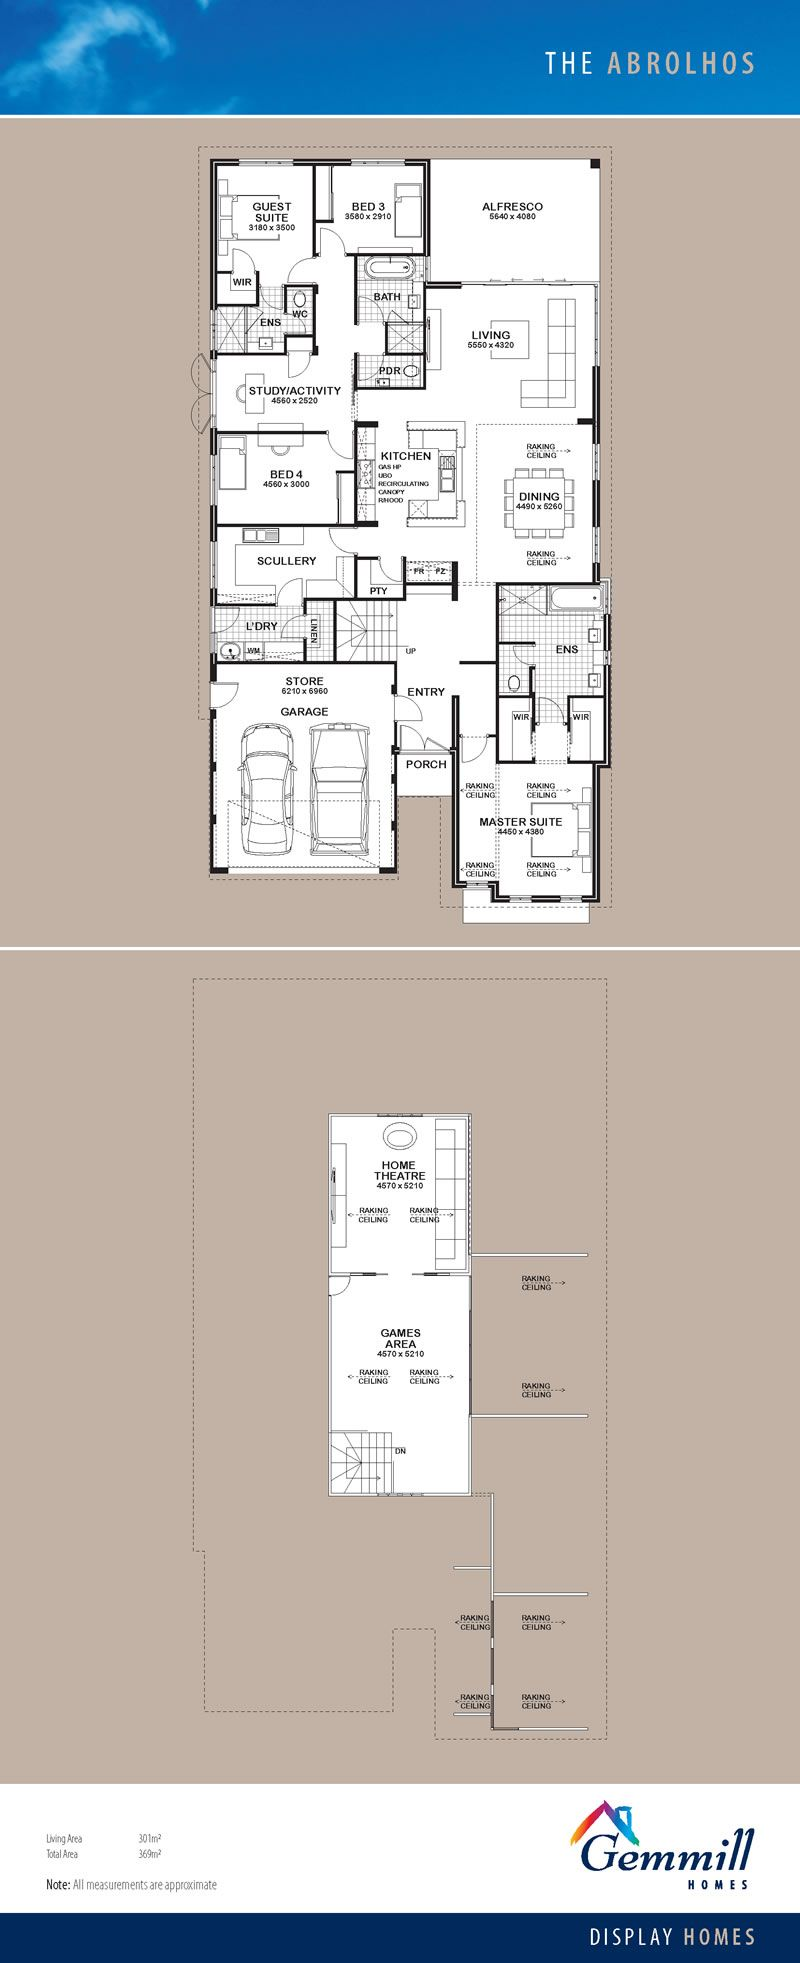 Floorplans Not Sure About The Scullery But The Rest Could Work For Access Floor Plans House Plans How To Plan